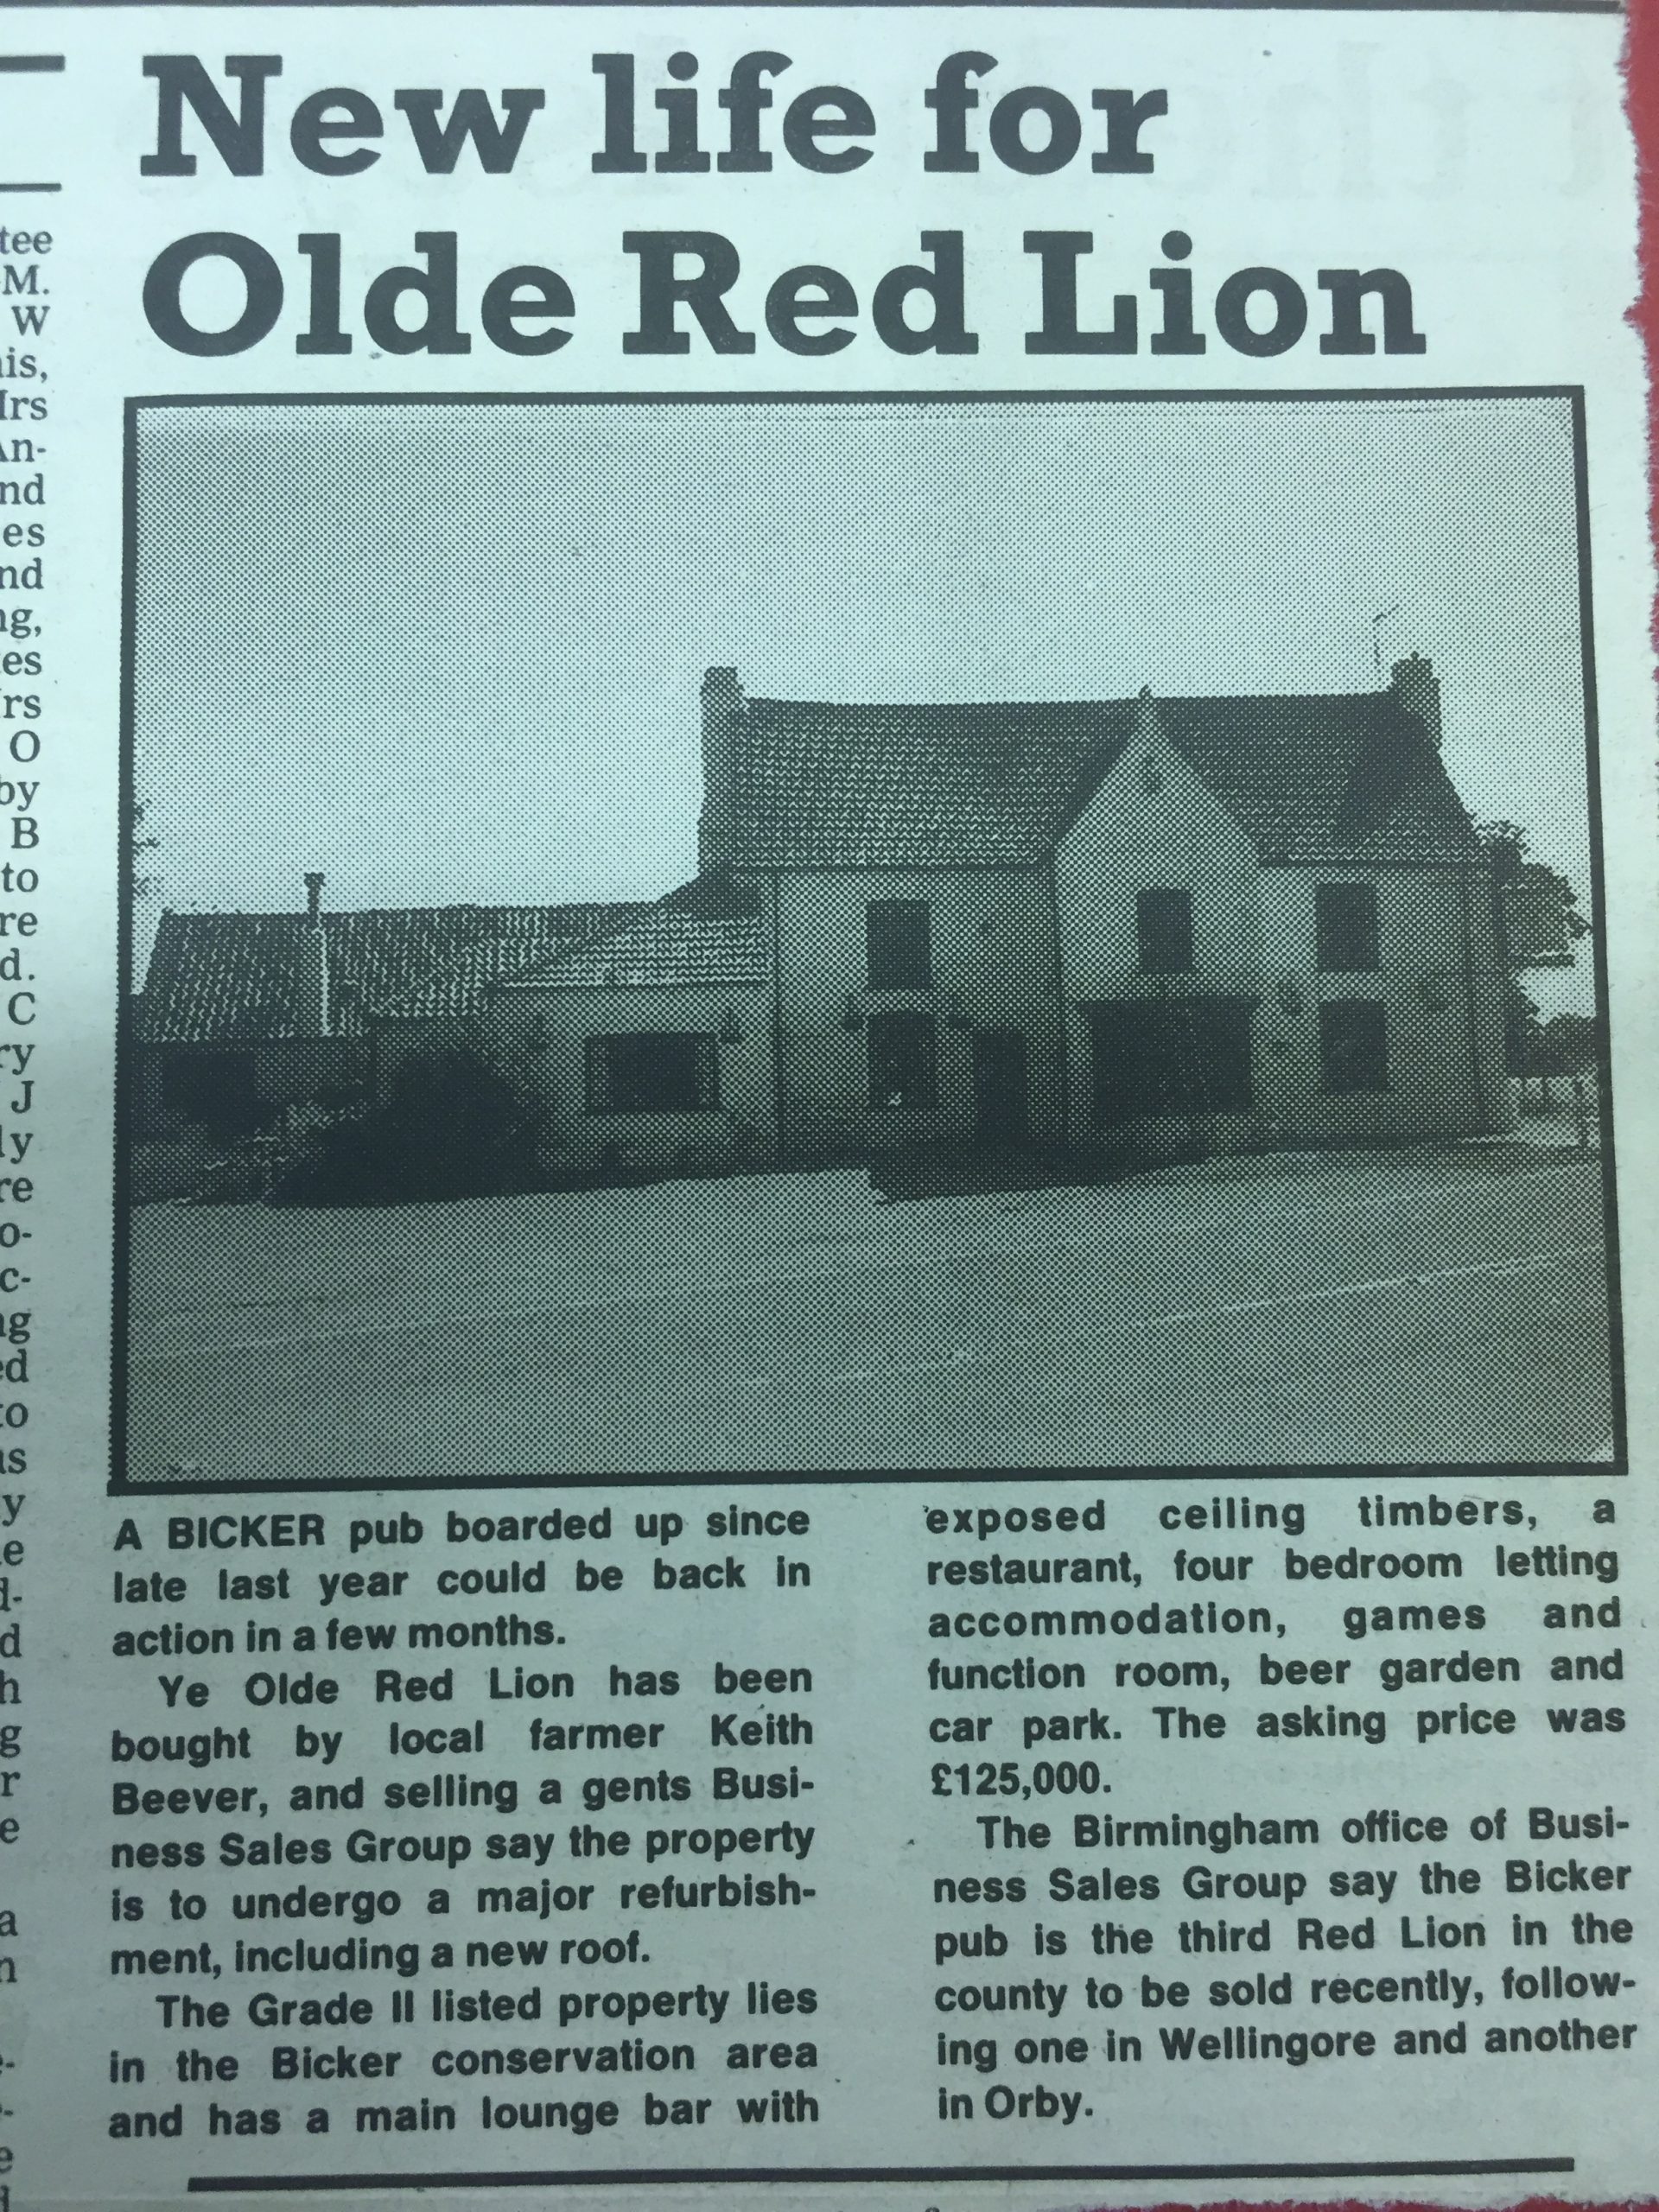 c1960 Boarded up G11 Red Lion re-opened